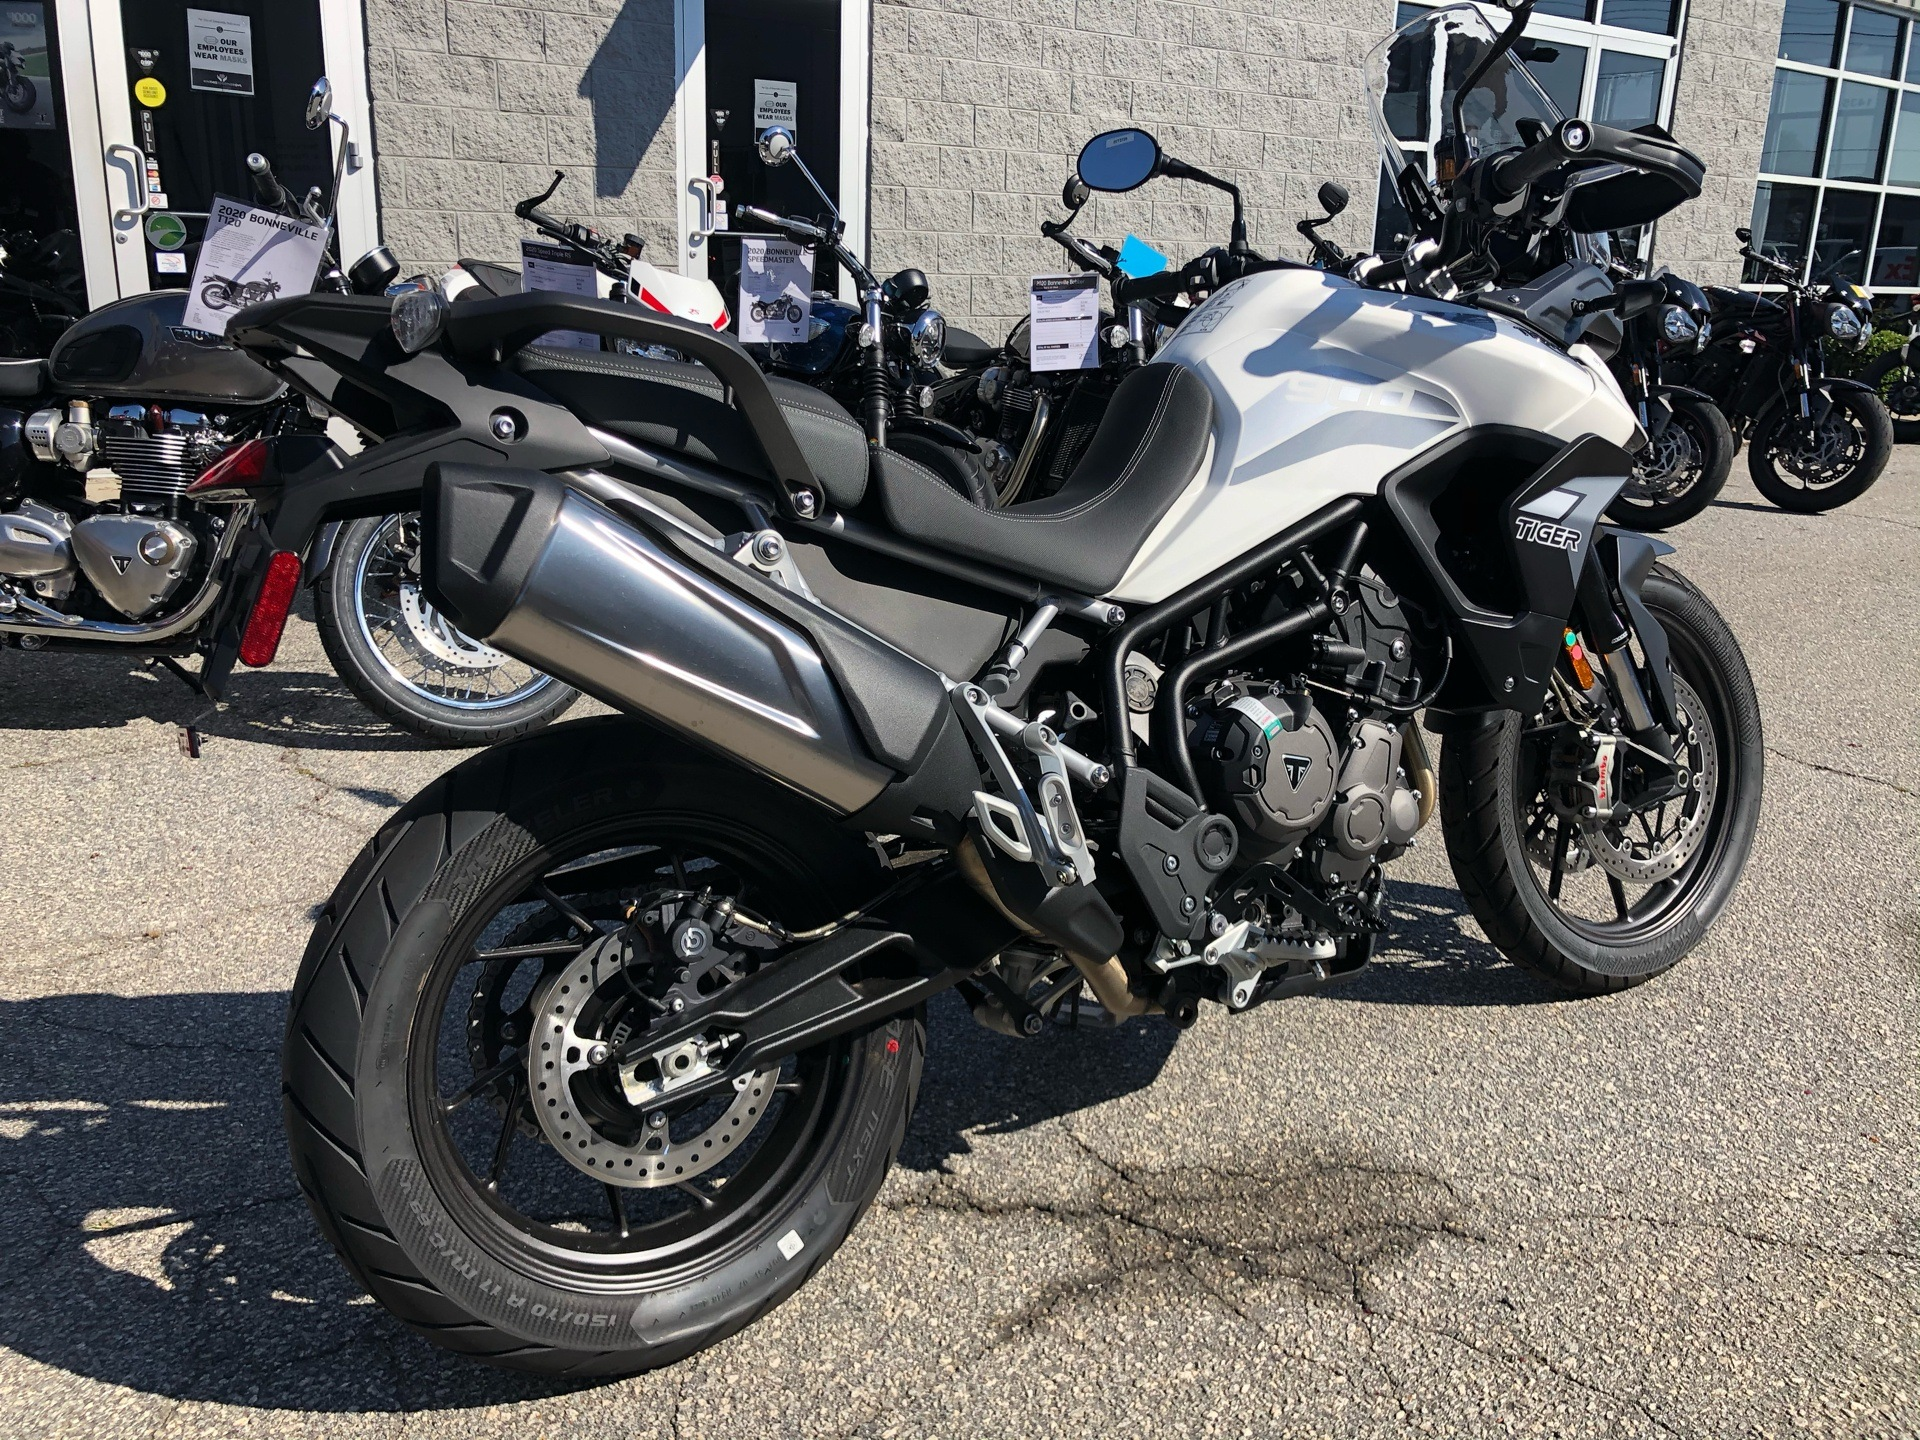 2020 Triumph Tiger 900 GT Low in Greenville, South Carolina - Photo 2